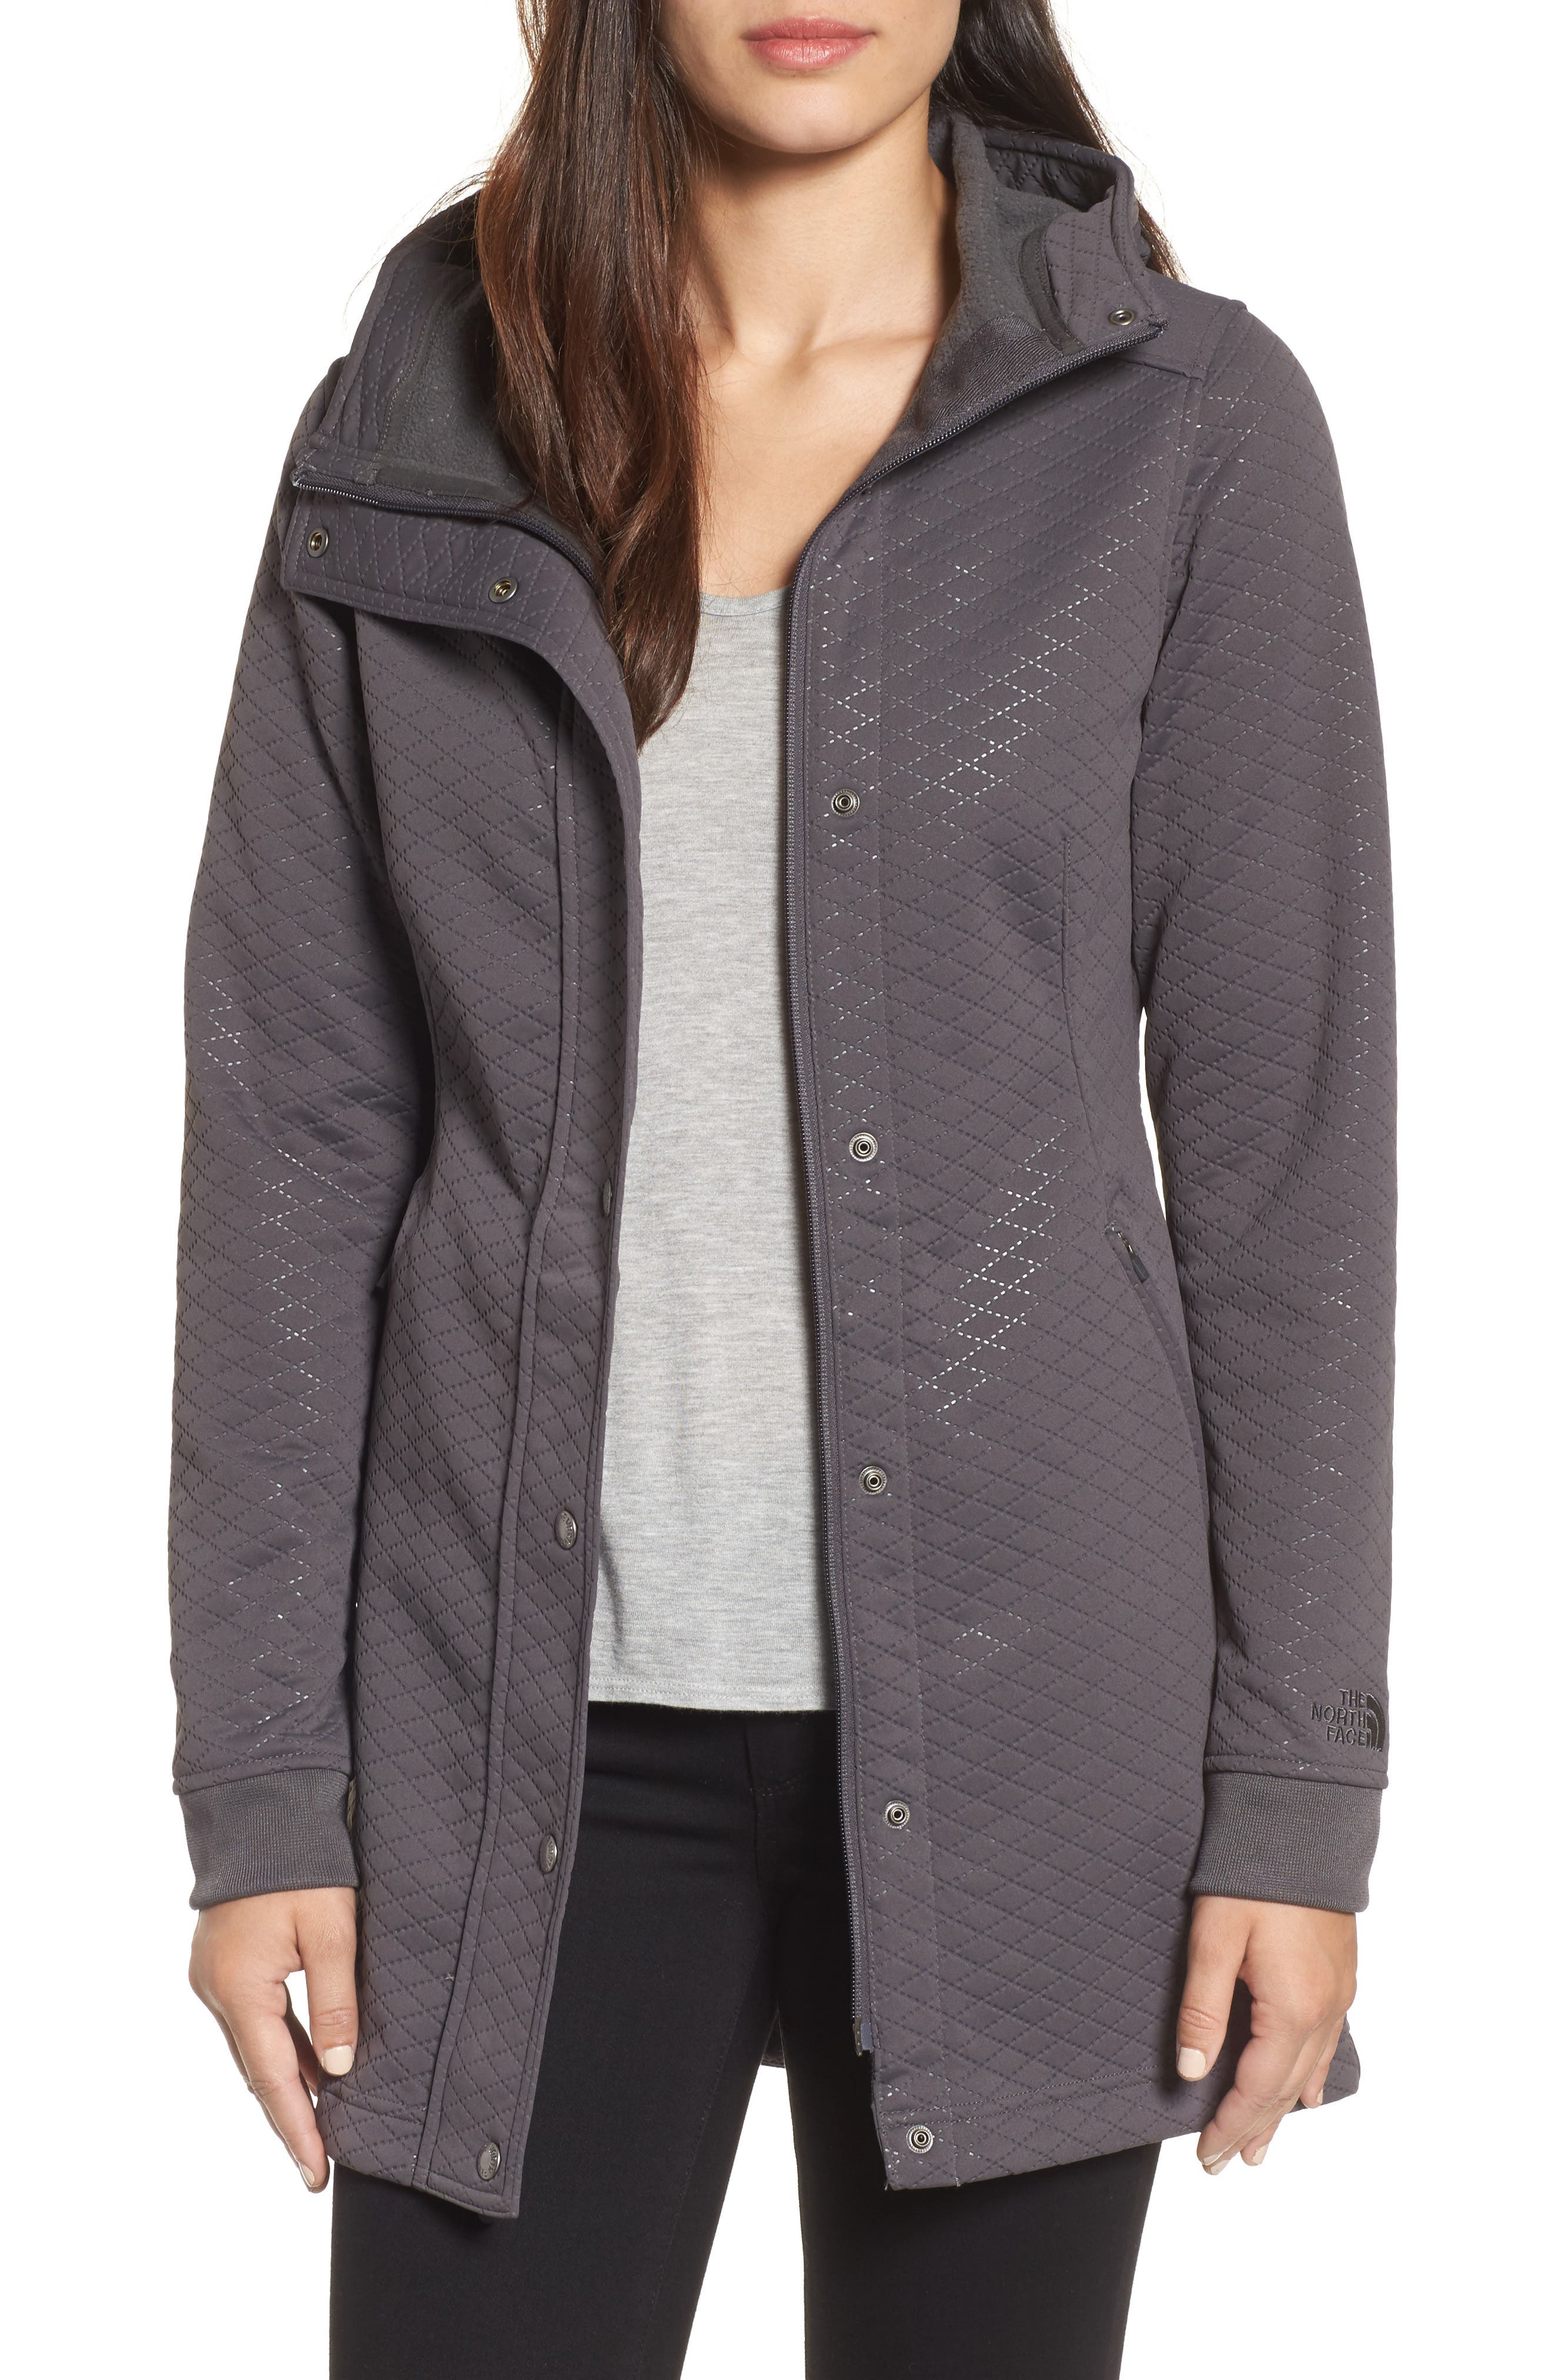 Recover-Up Jacket,                         Main,                         color, 021